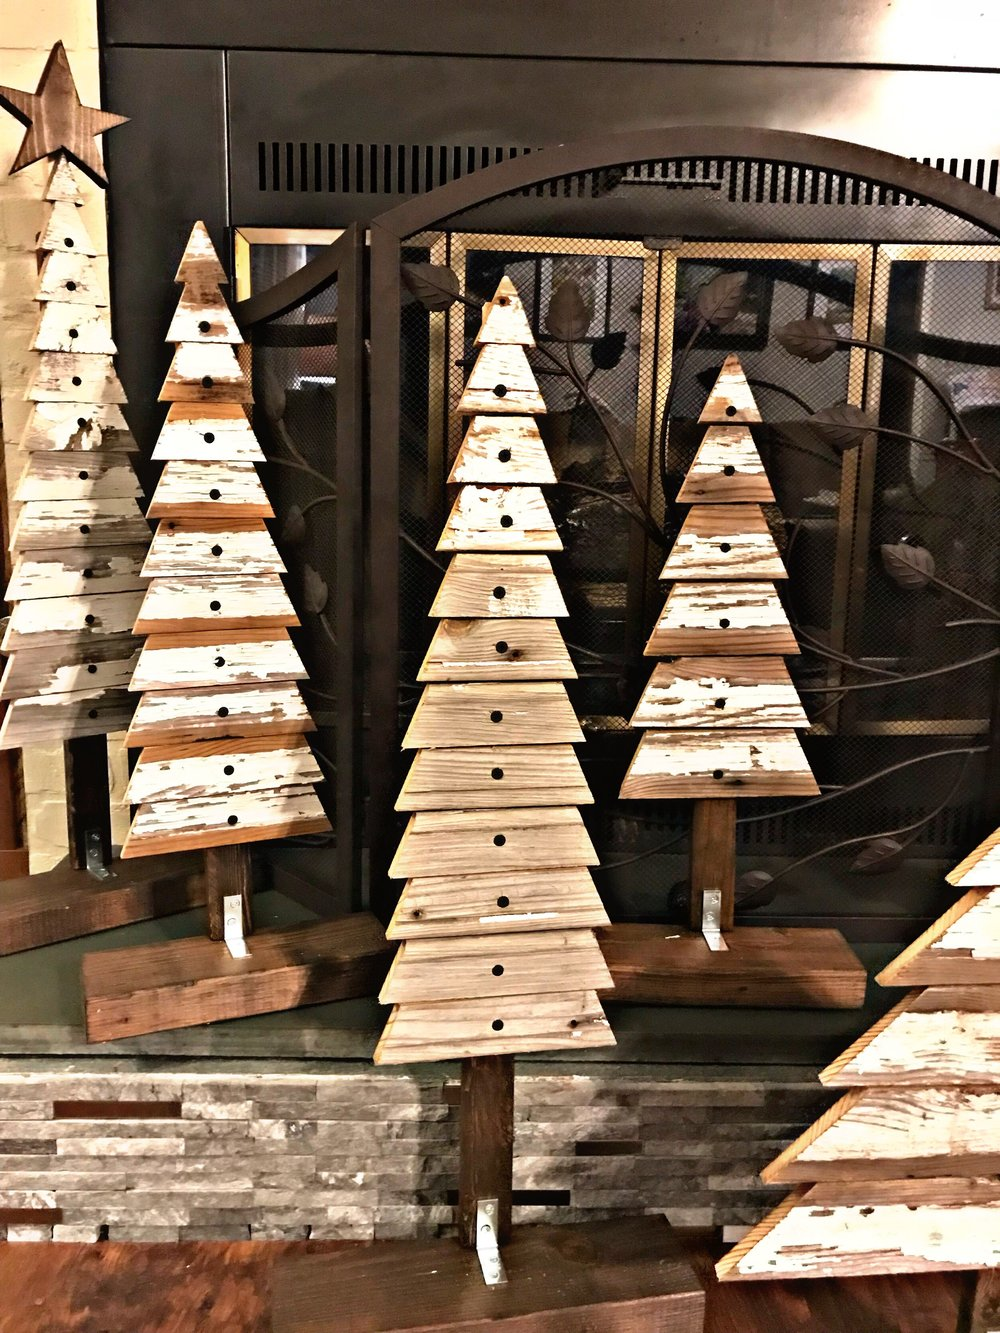 Christmas Tree by The Sandman Collective - Just in time for your holiday decorating, these rustic Christmas trees made from reclaimed shiplap are the perfect compliment to your decor. Available in three sizes: small, medium, or large. Check them out on their Facebook page and message them with your order!Price: $15 for small, $20 for medium, & $25 for large with star